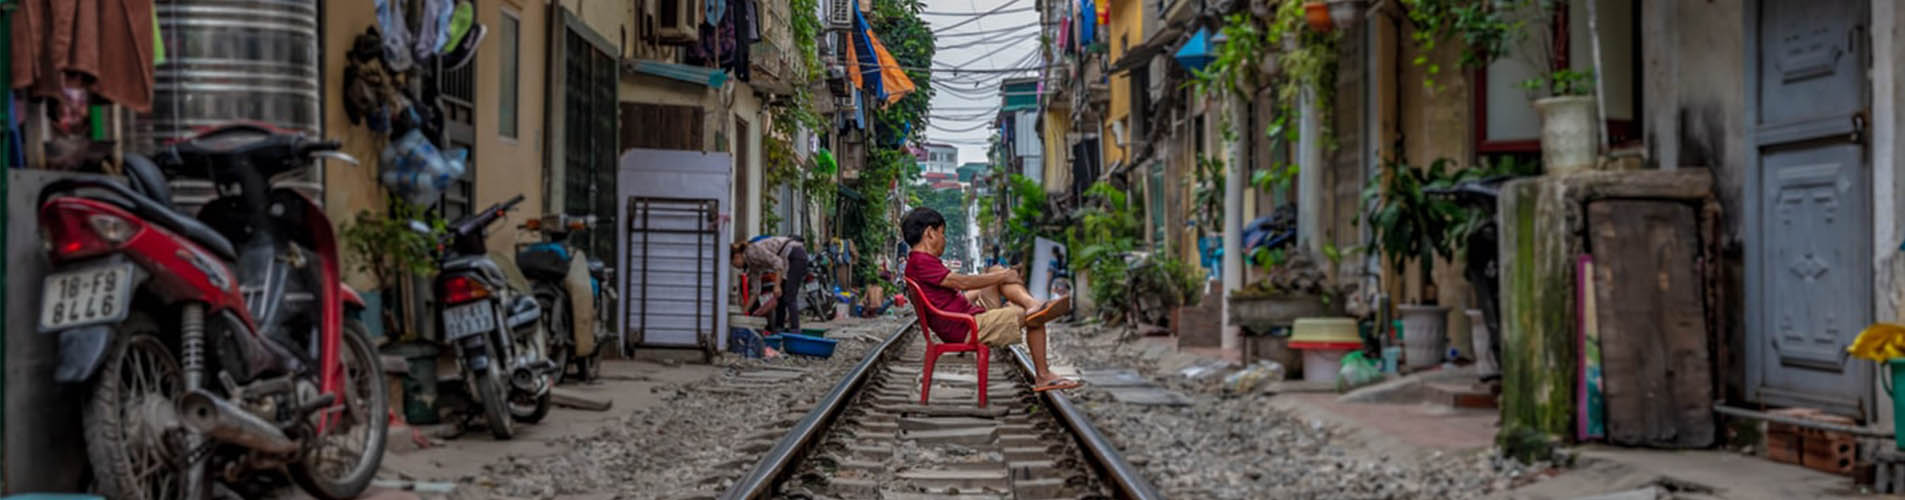 7 things to keep in mind for a Hanoi tourist